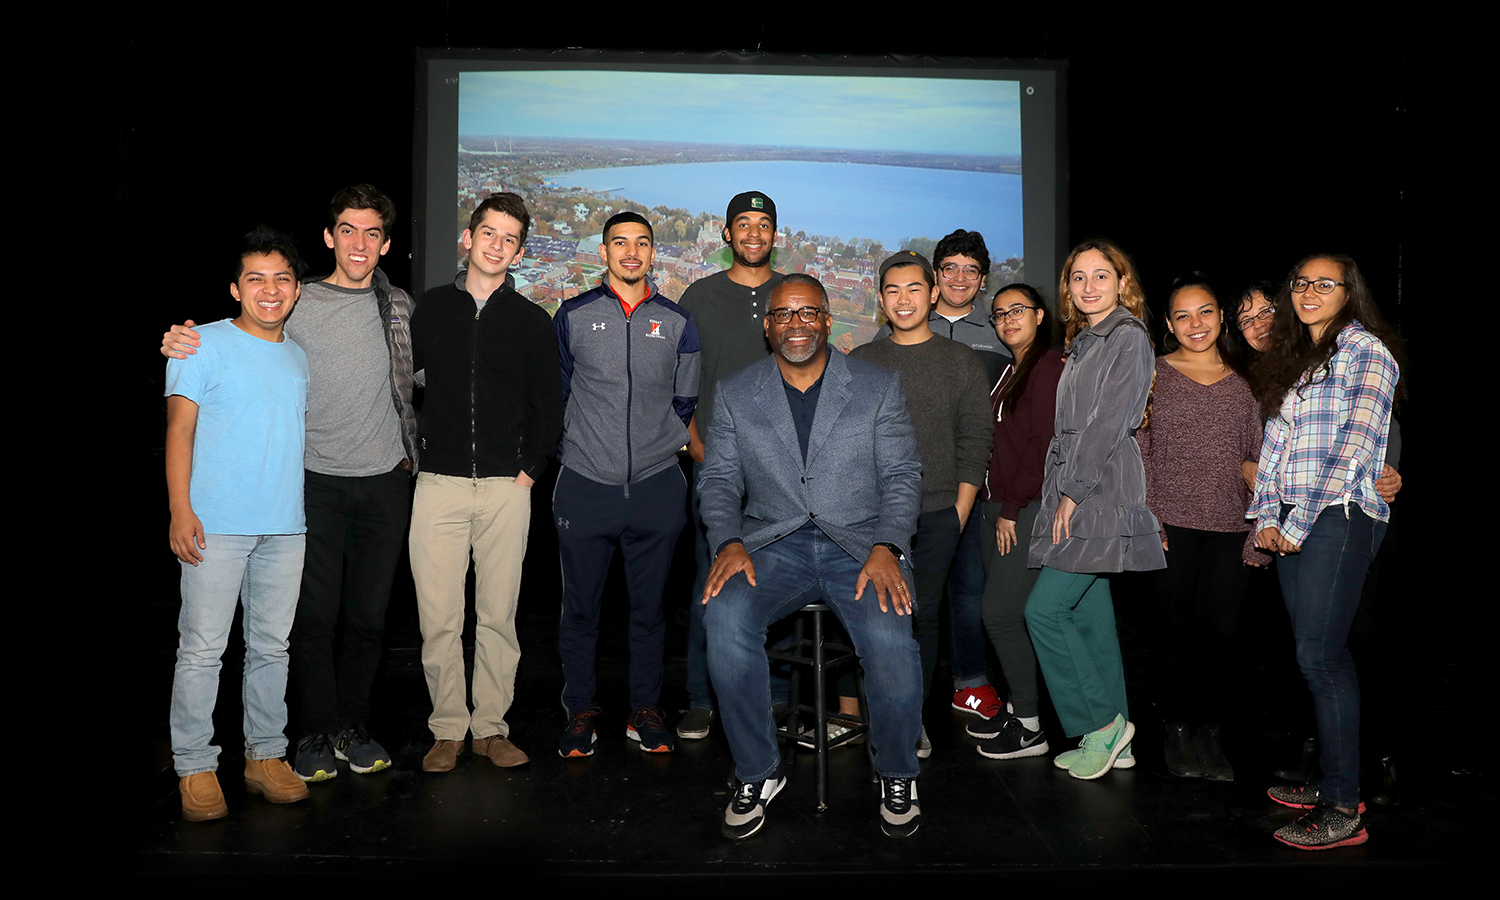 Students gather for a photo with President Gregory J. Vincent during Thanksgiving dinner in the Bartlett Theatre.